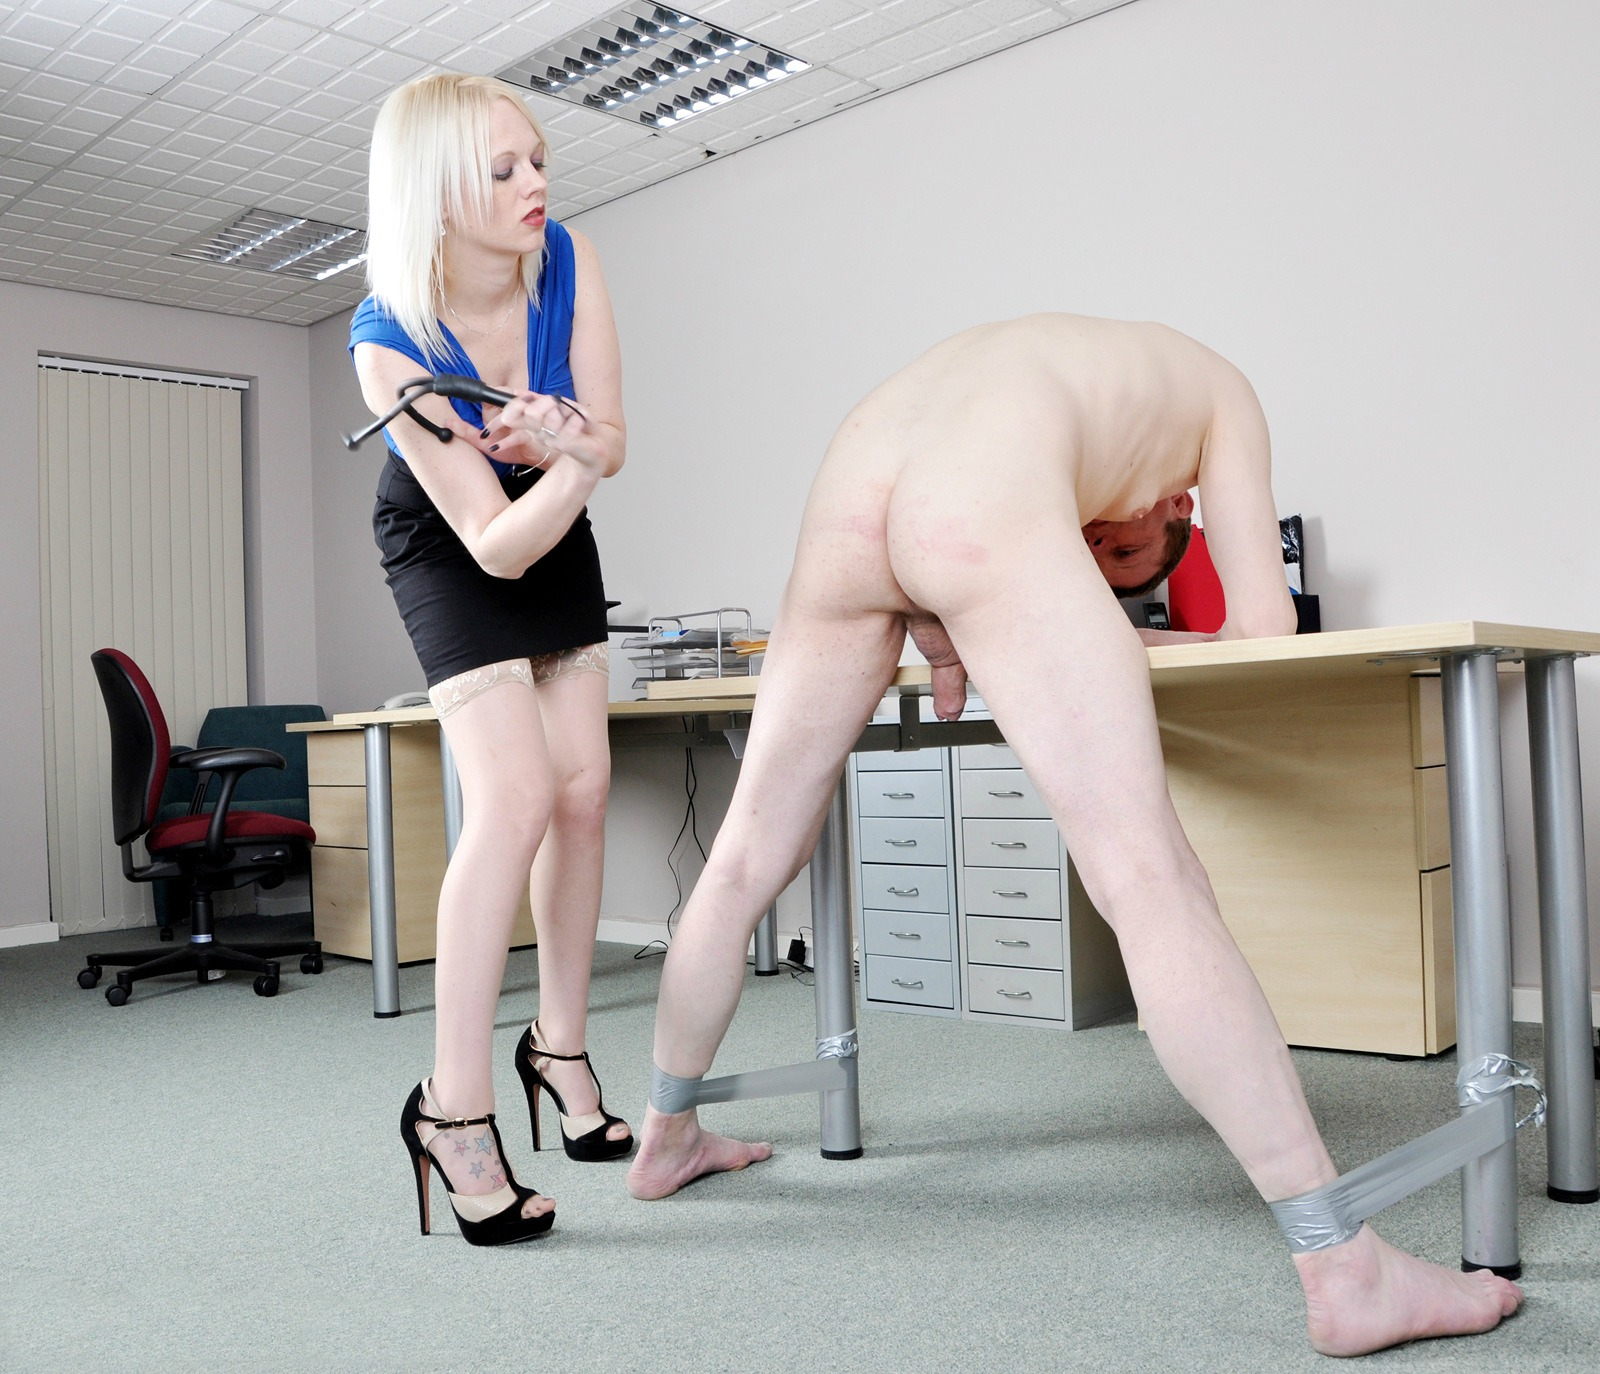 Skinny Blonde Goddess Heather In Stockings and High Heels - Hard Punishment Spank Her Bondaged Nude Slave CFNM BDSM